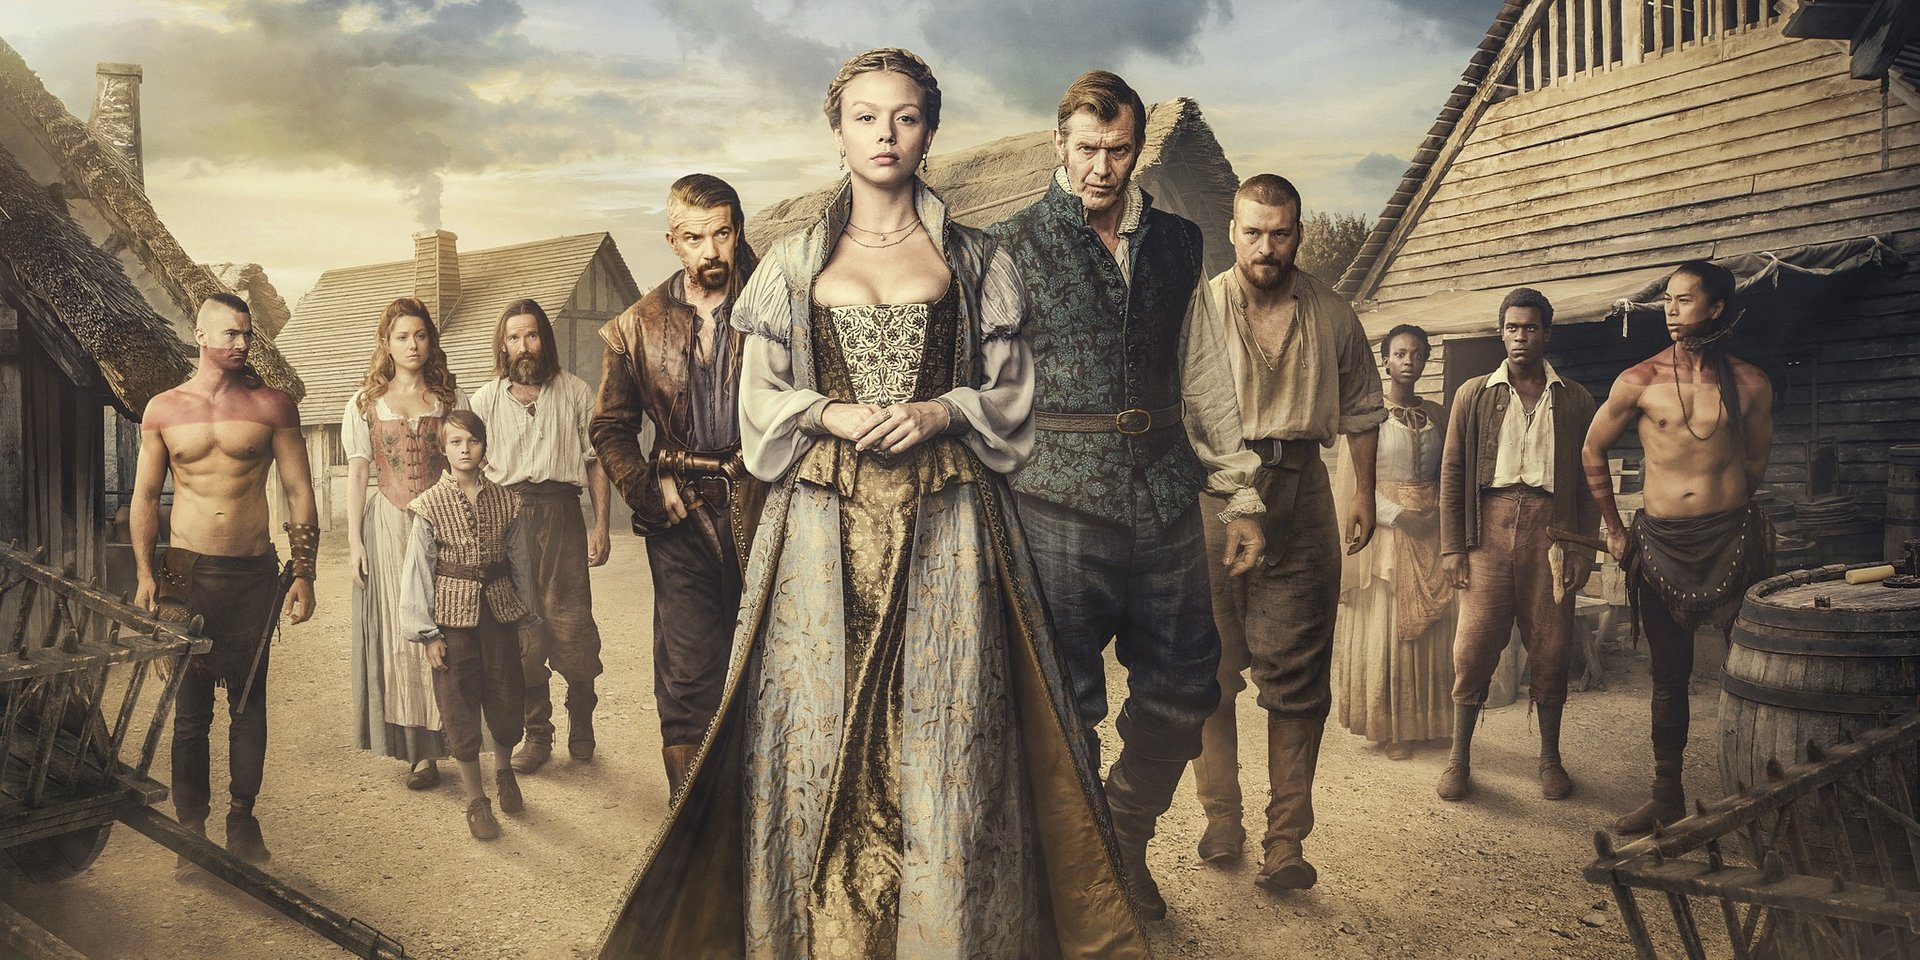 FOX LIFE ESTREIA ÚLTIMA TEMPORADA DO DRAMA BRITÂNICO 'JAMESTOWN'